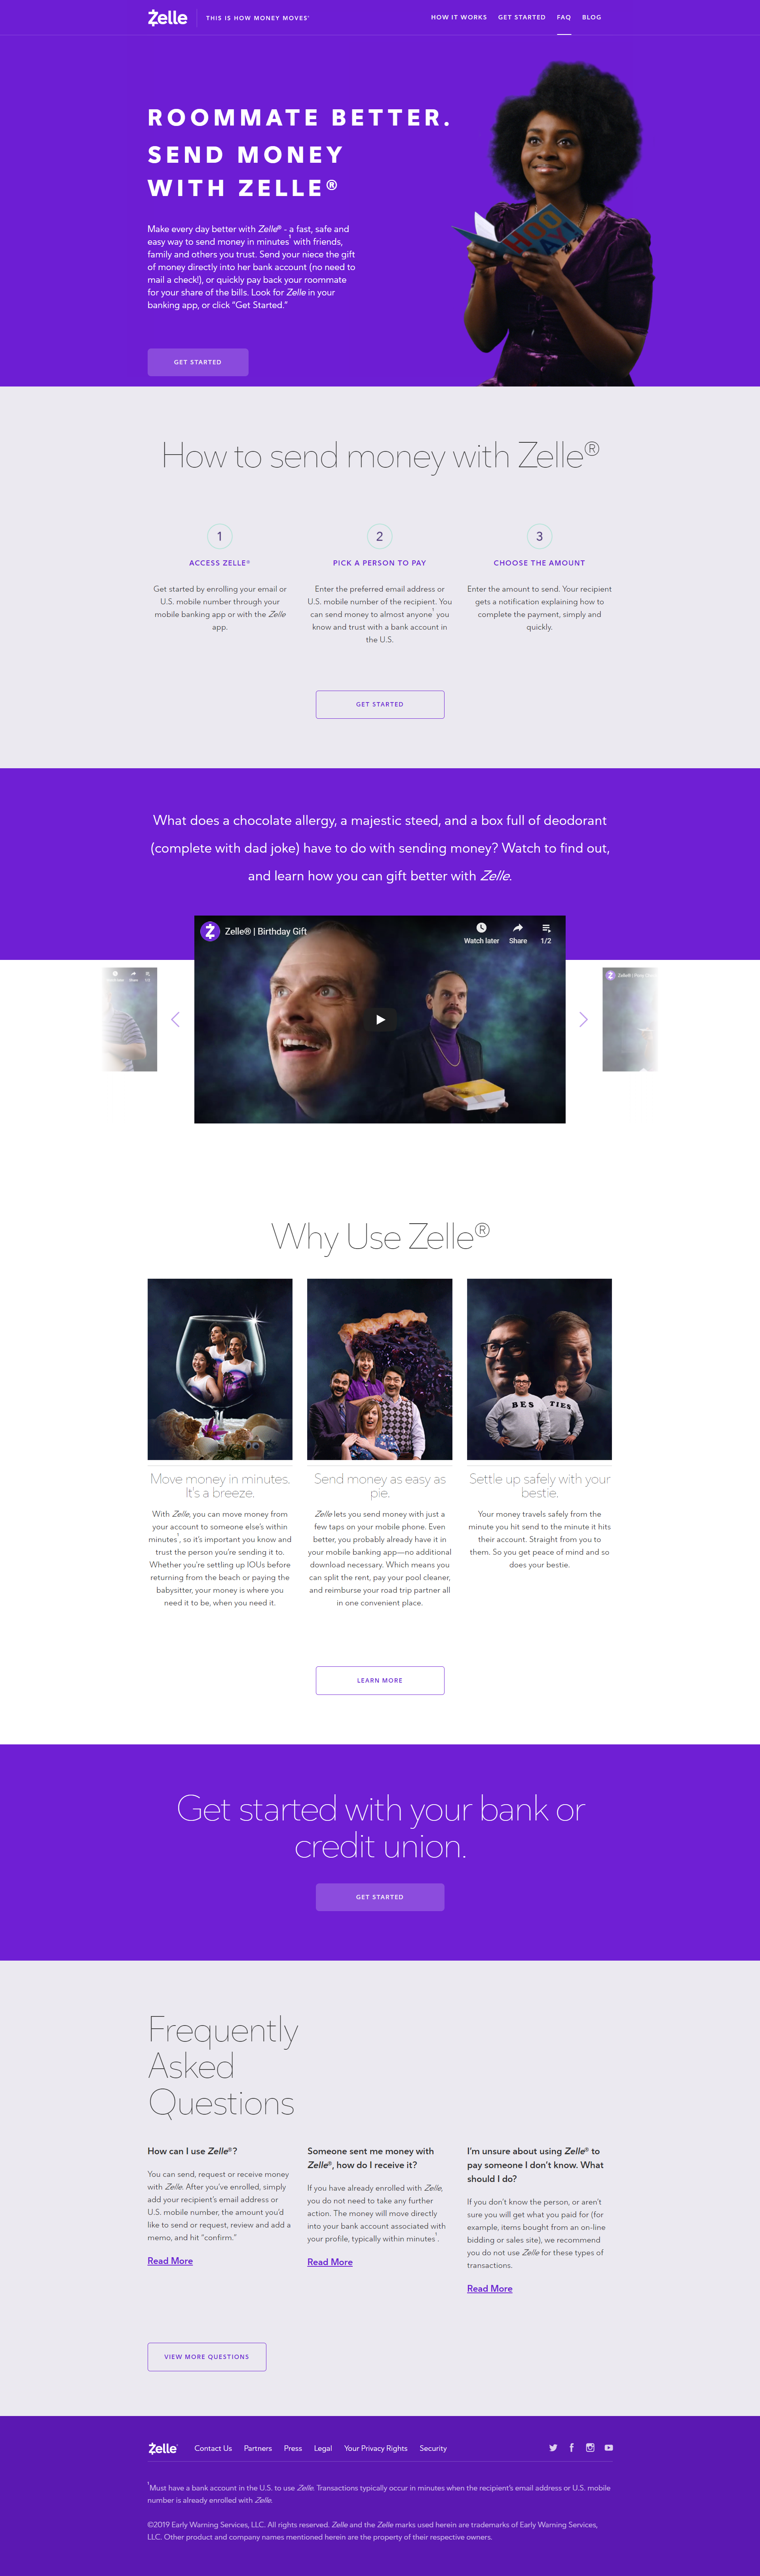 Landing page example #3 - Zelle